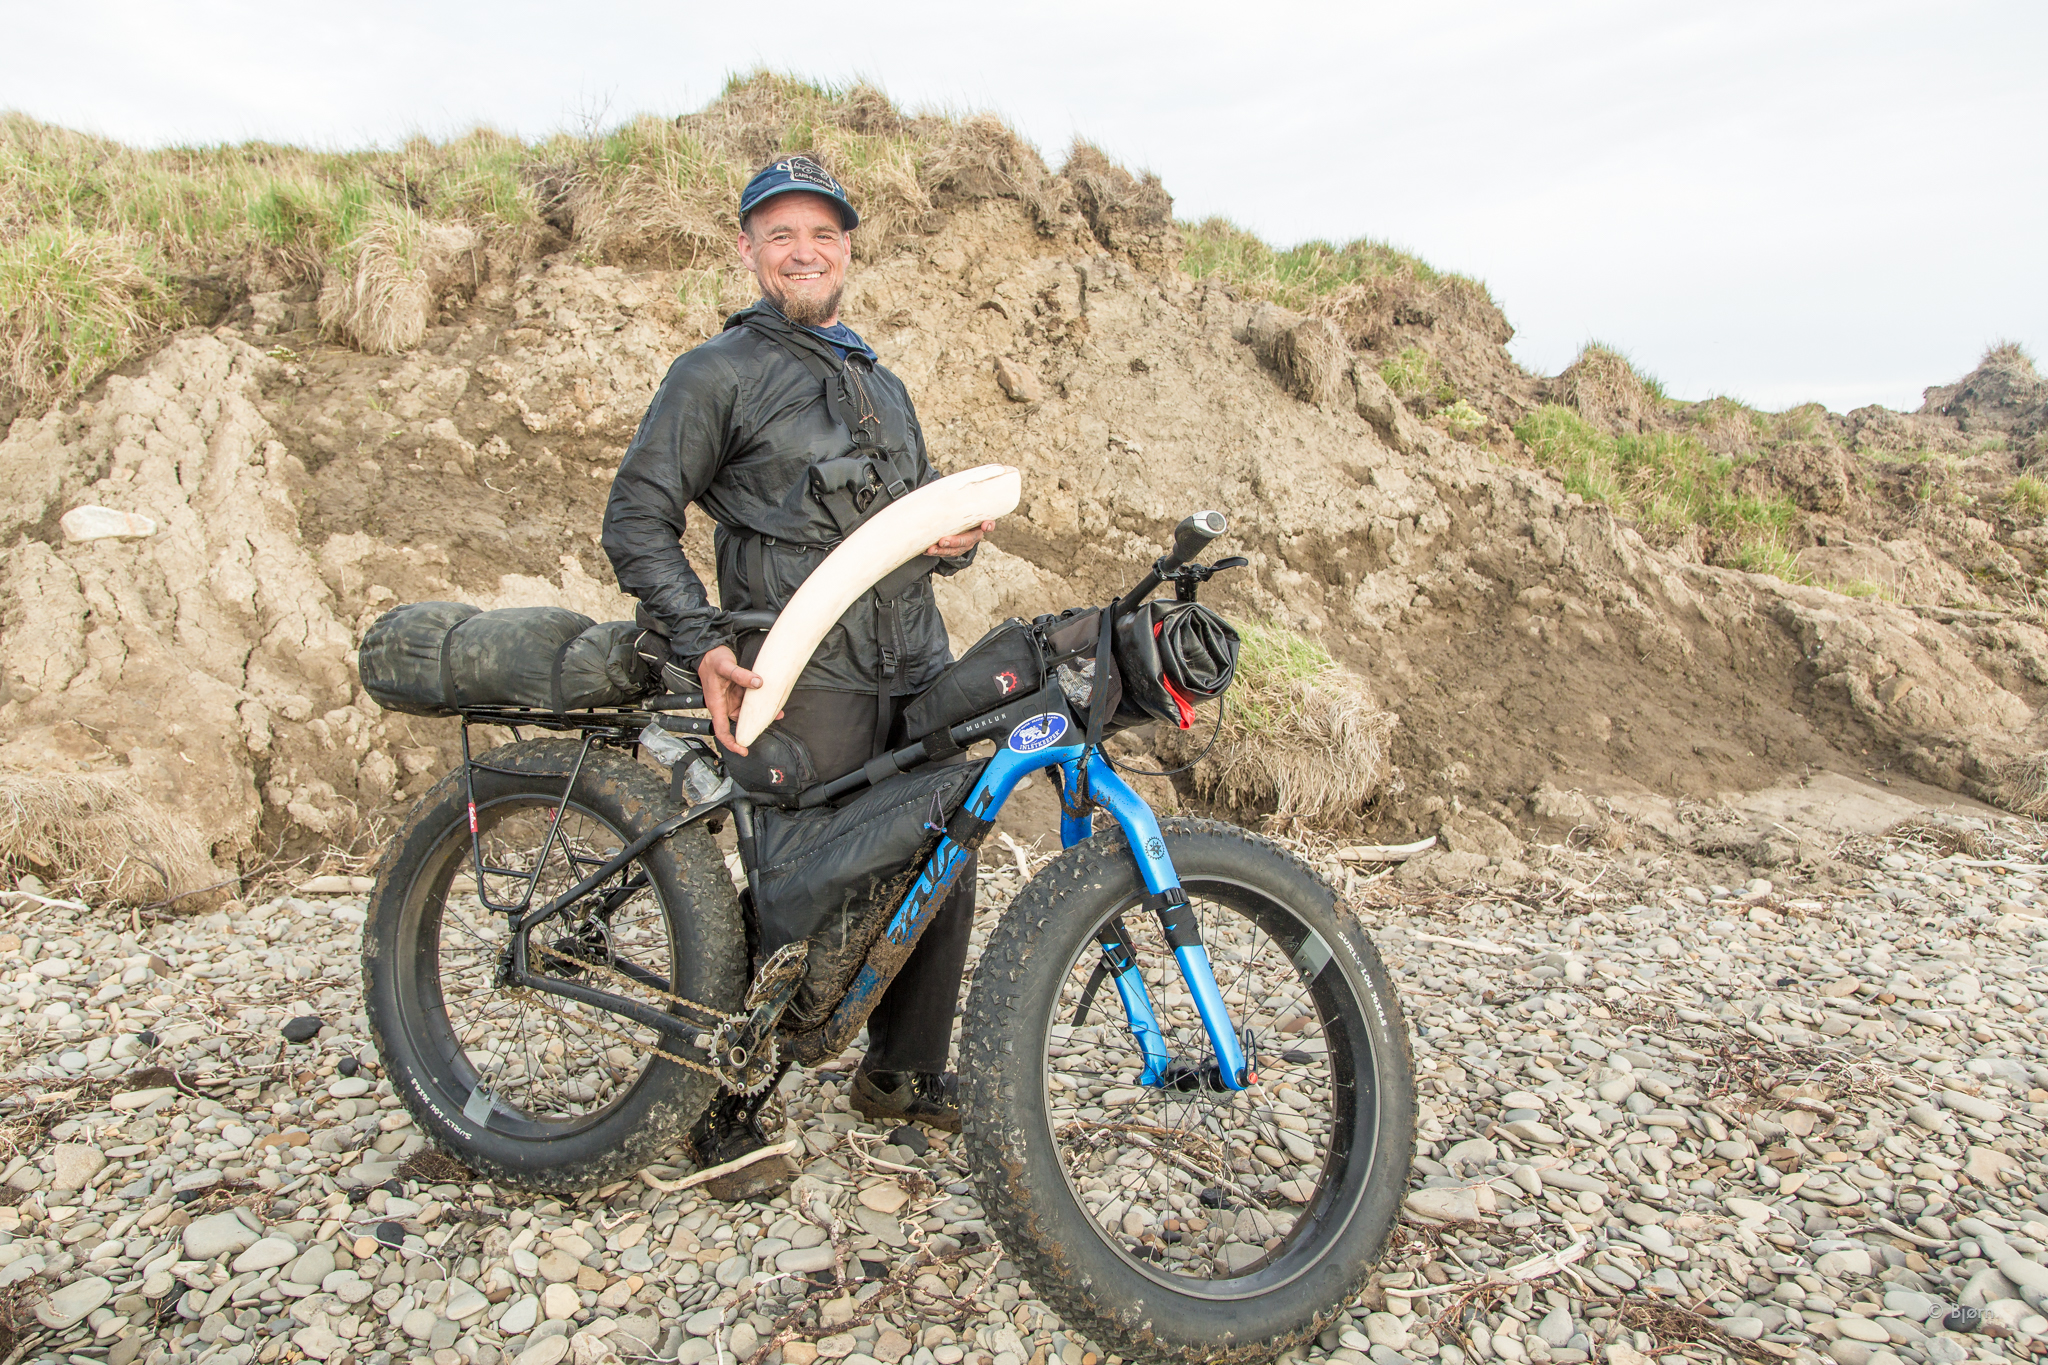 Bjørn poses with a mammoth tusk he found while riding his Salsa Cycles Mukluk fat-bike in the Arctic of Alaska.